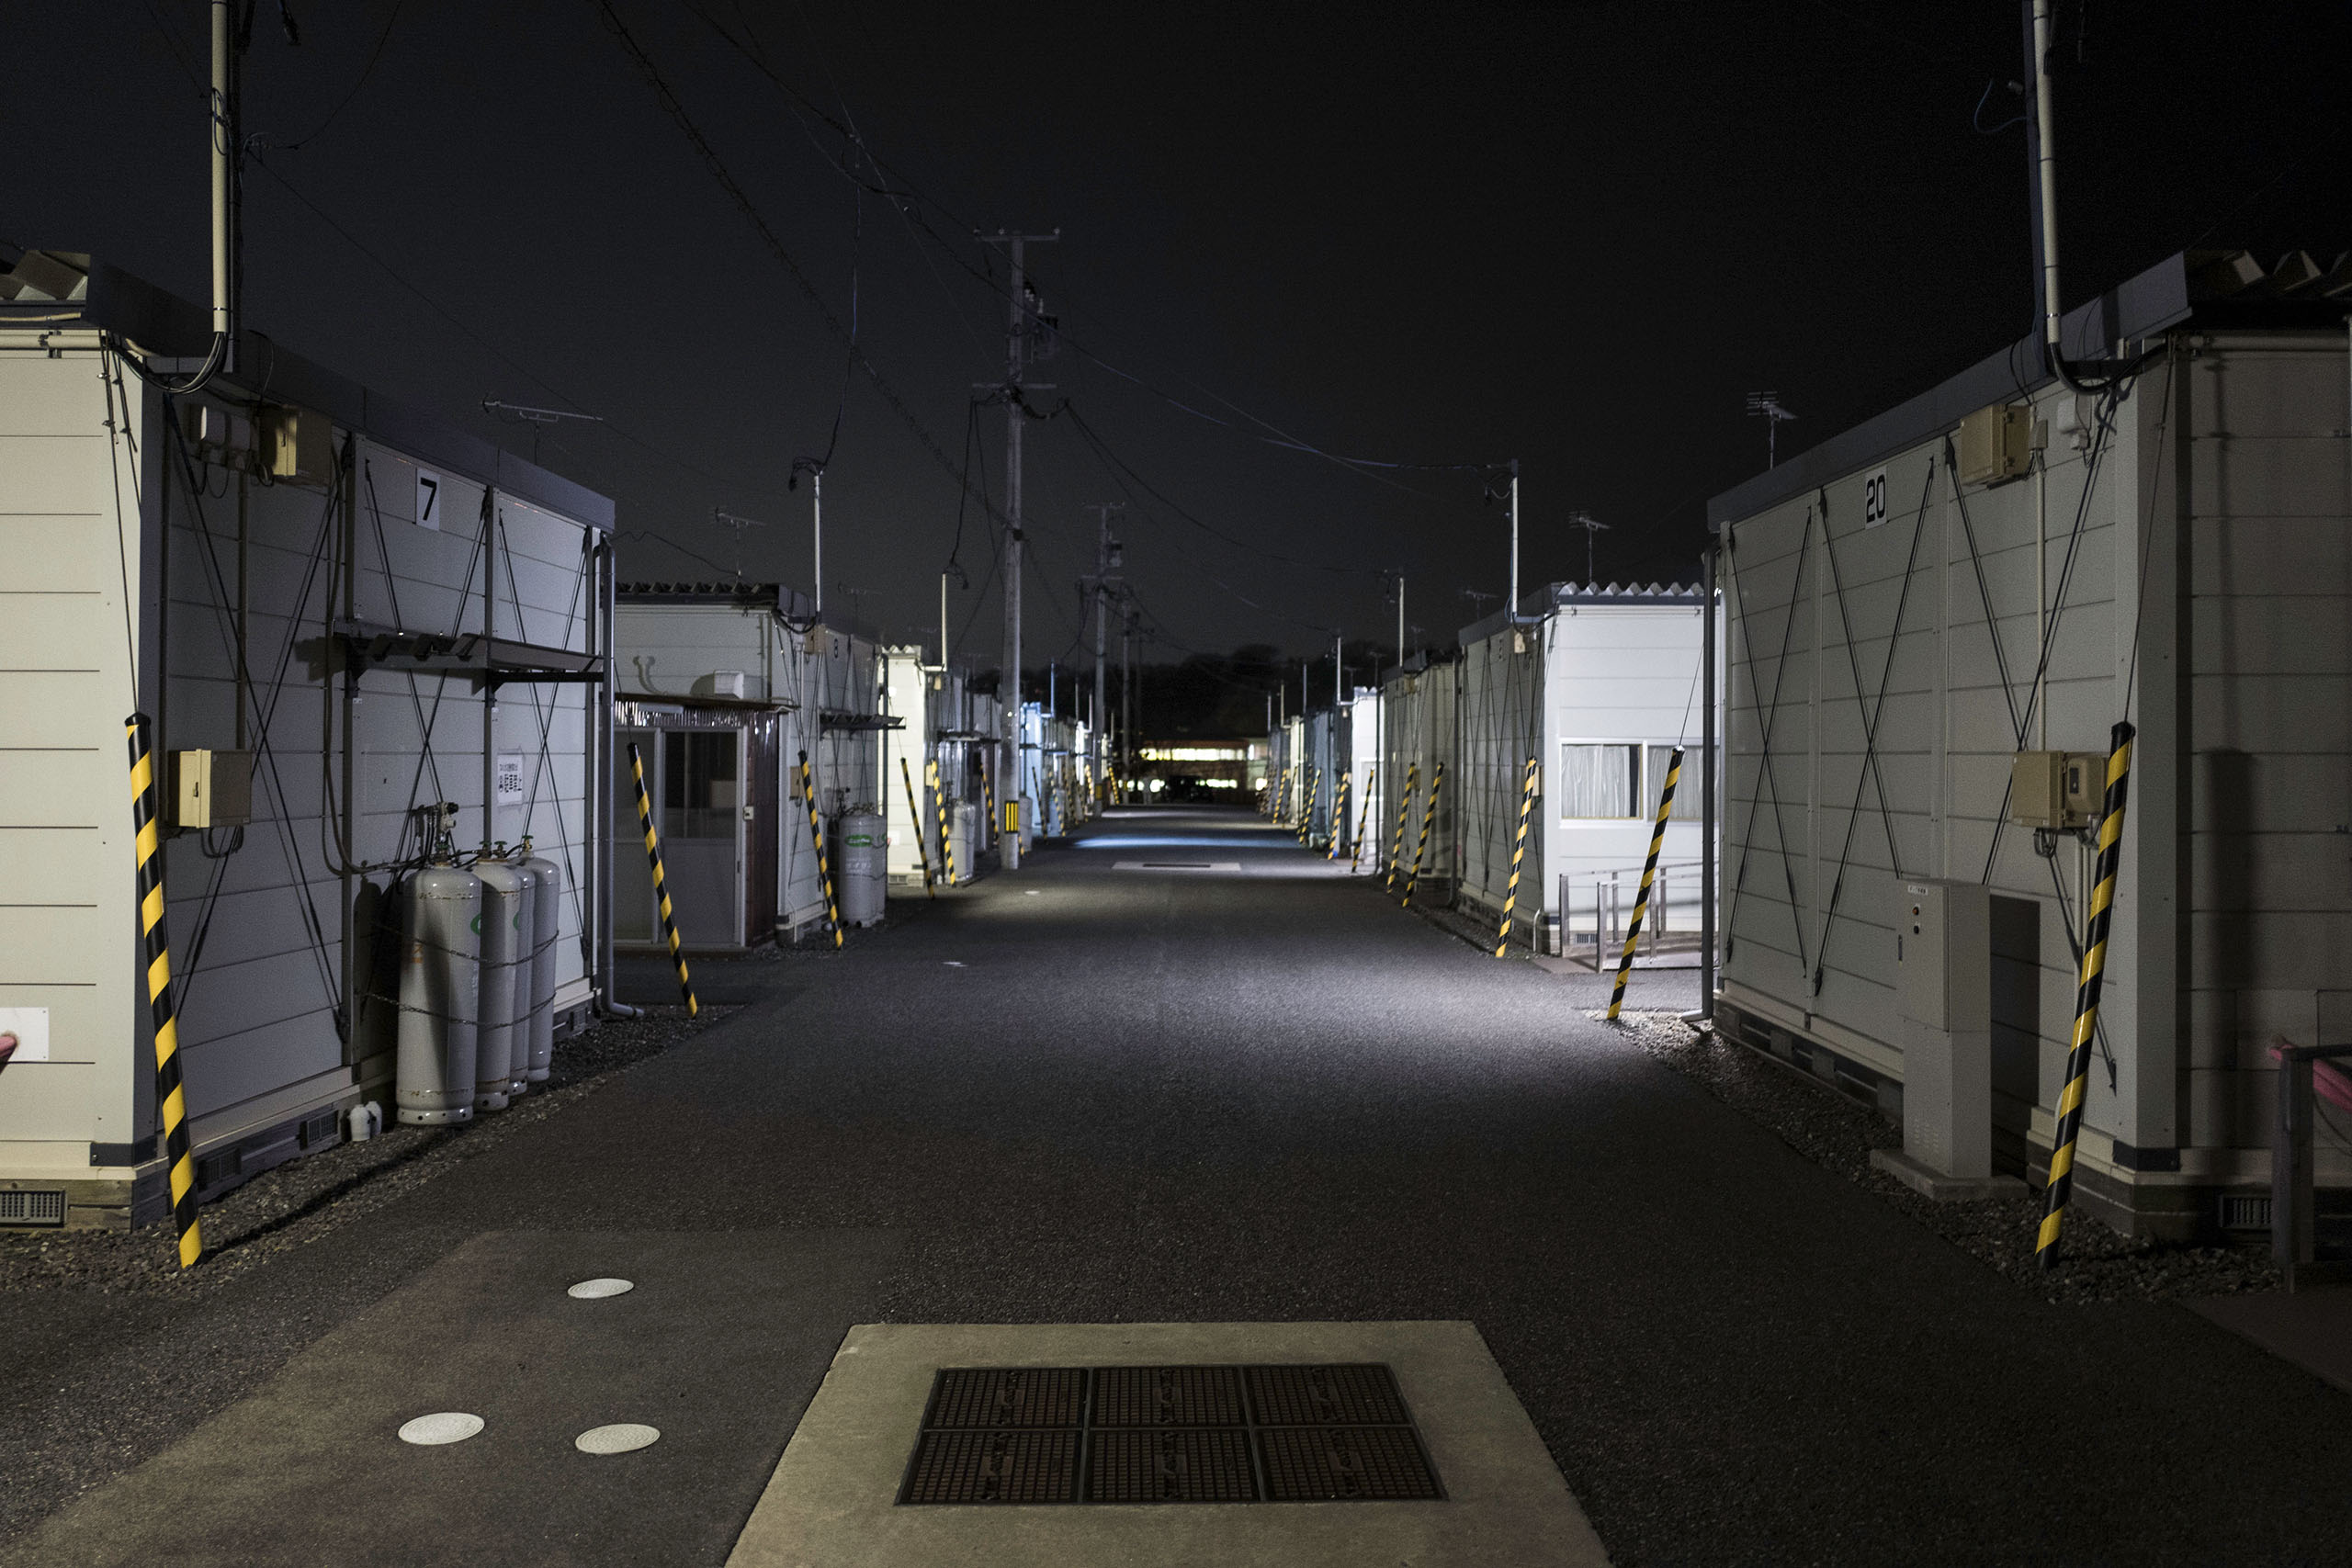 Temporary housing units are seen at night, March 4, 2016.